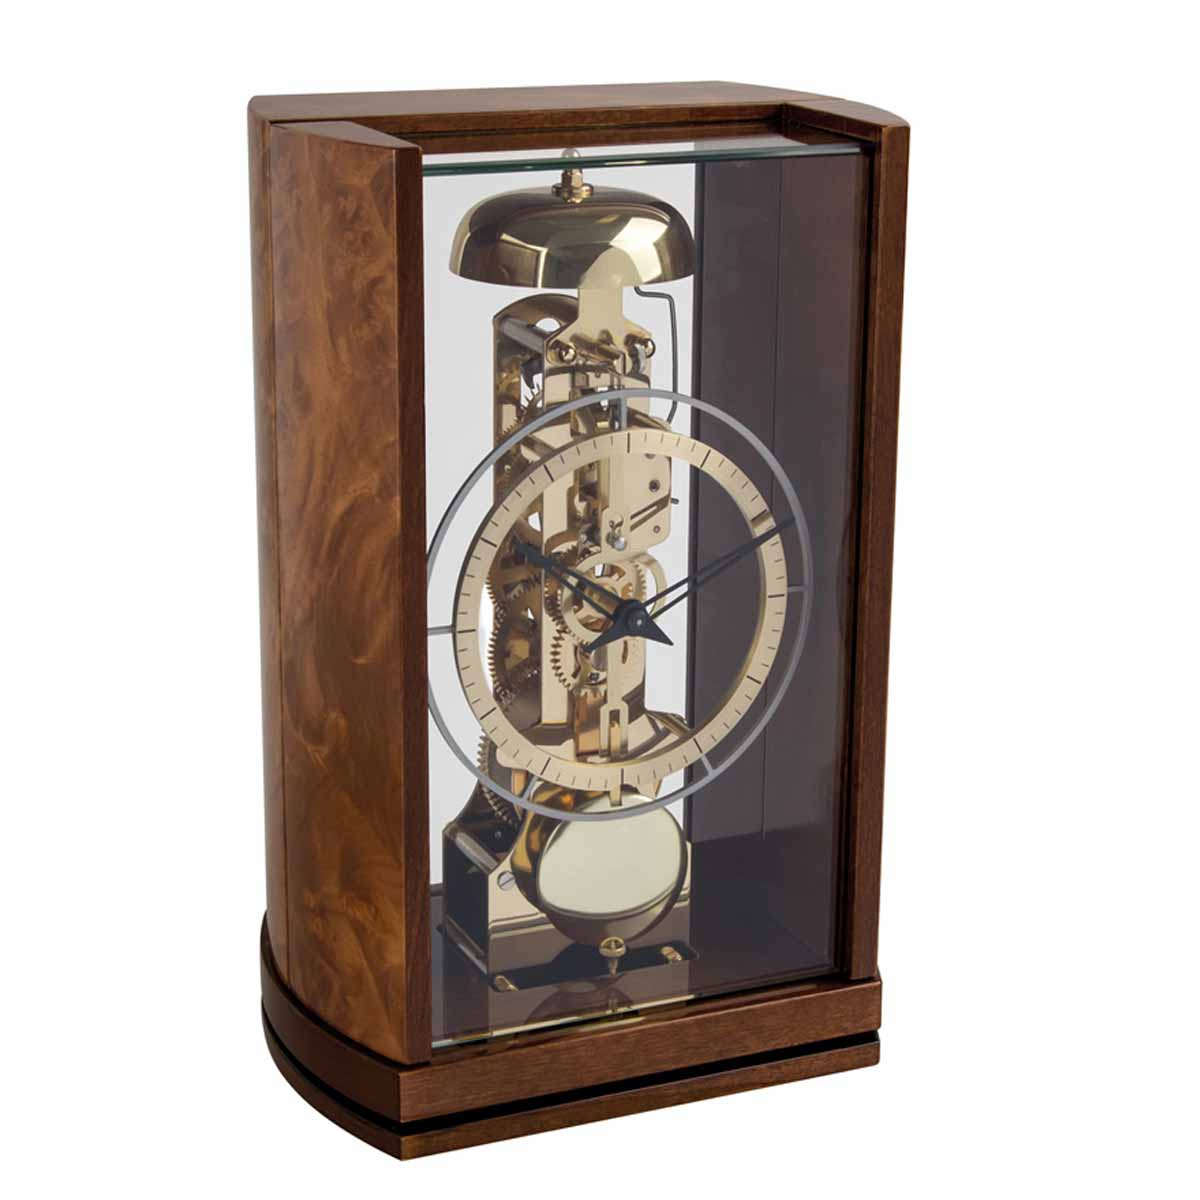 MITCHAM 23050-R30791 Walnut Table Clock